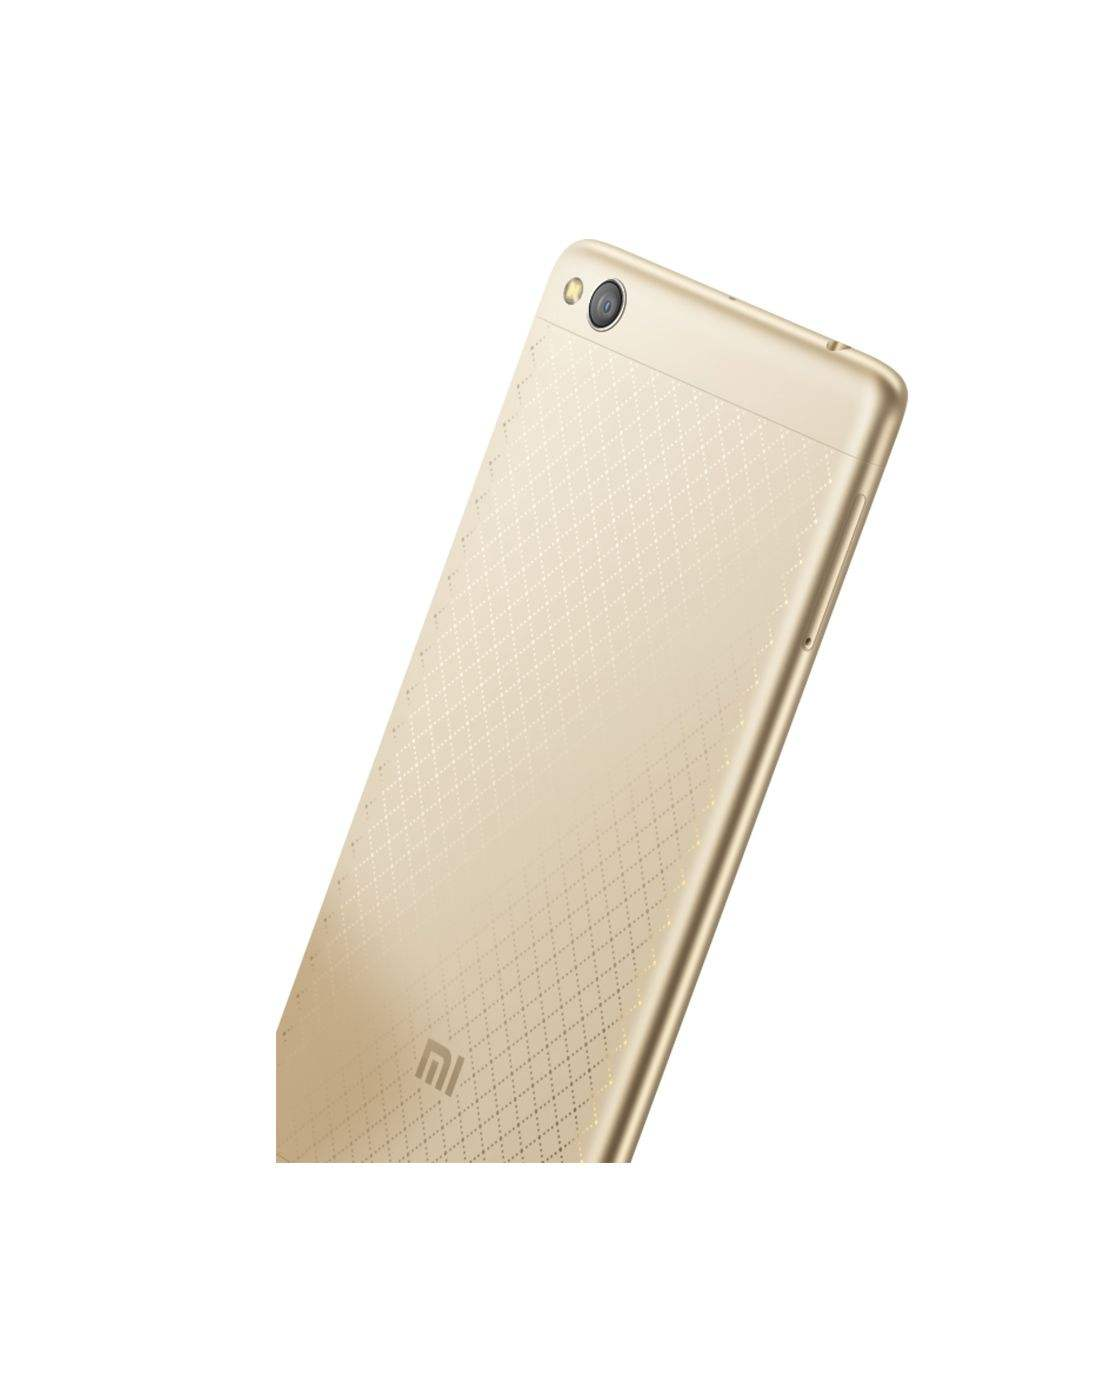 The latest mi phone 5 (64GB) gold cost 1500 yuan